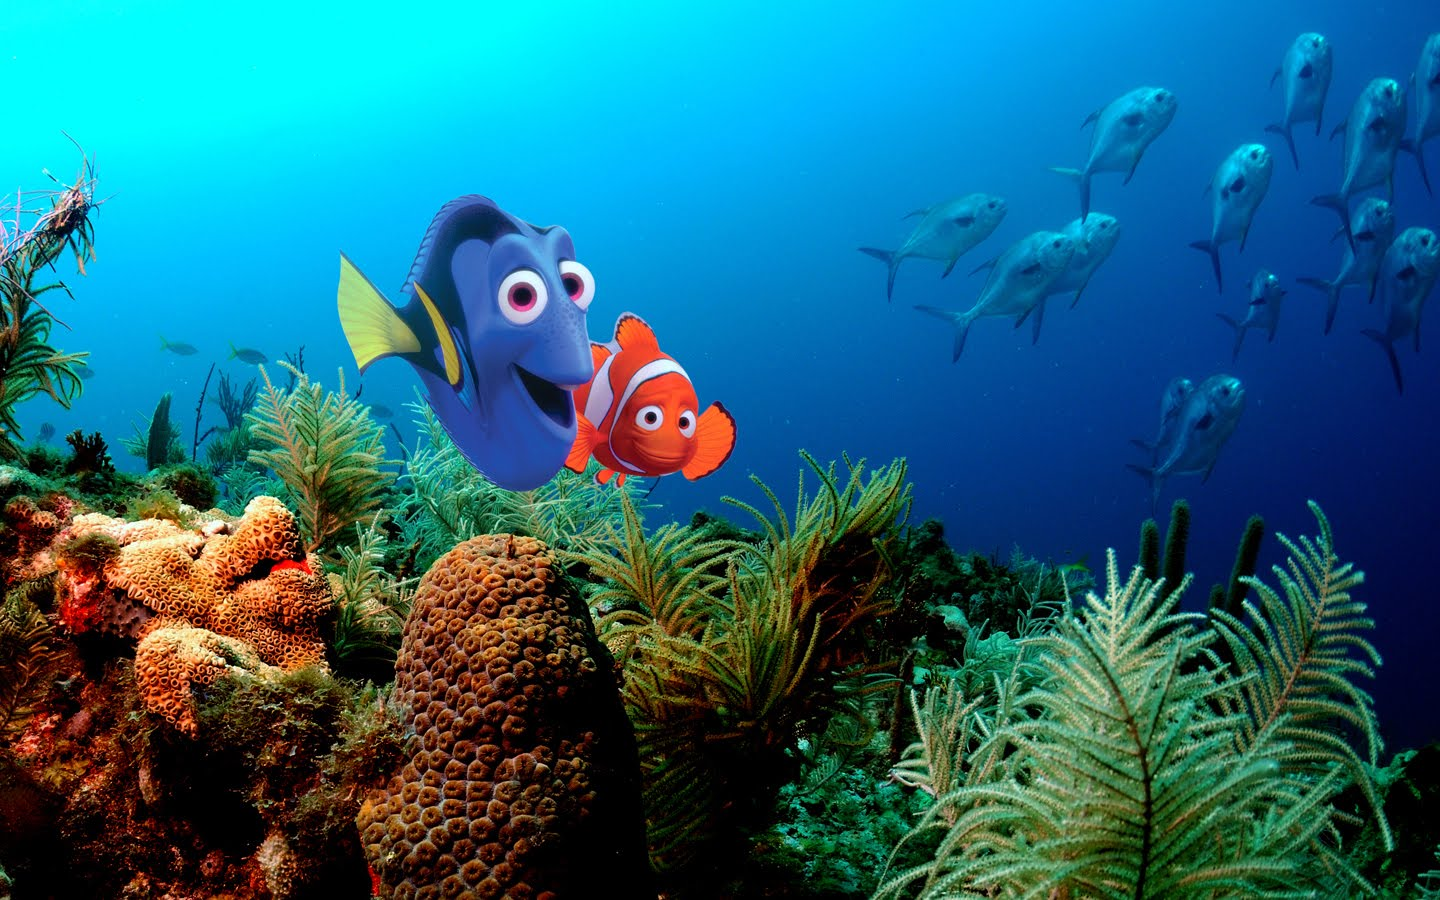 finding nemo wallpaper and background image | 1440x900 | id:453148